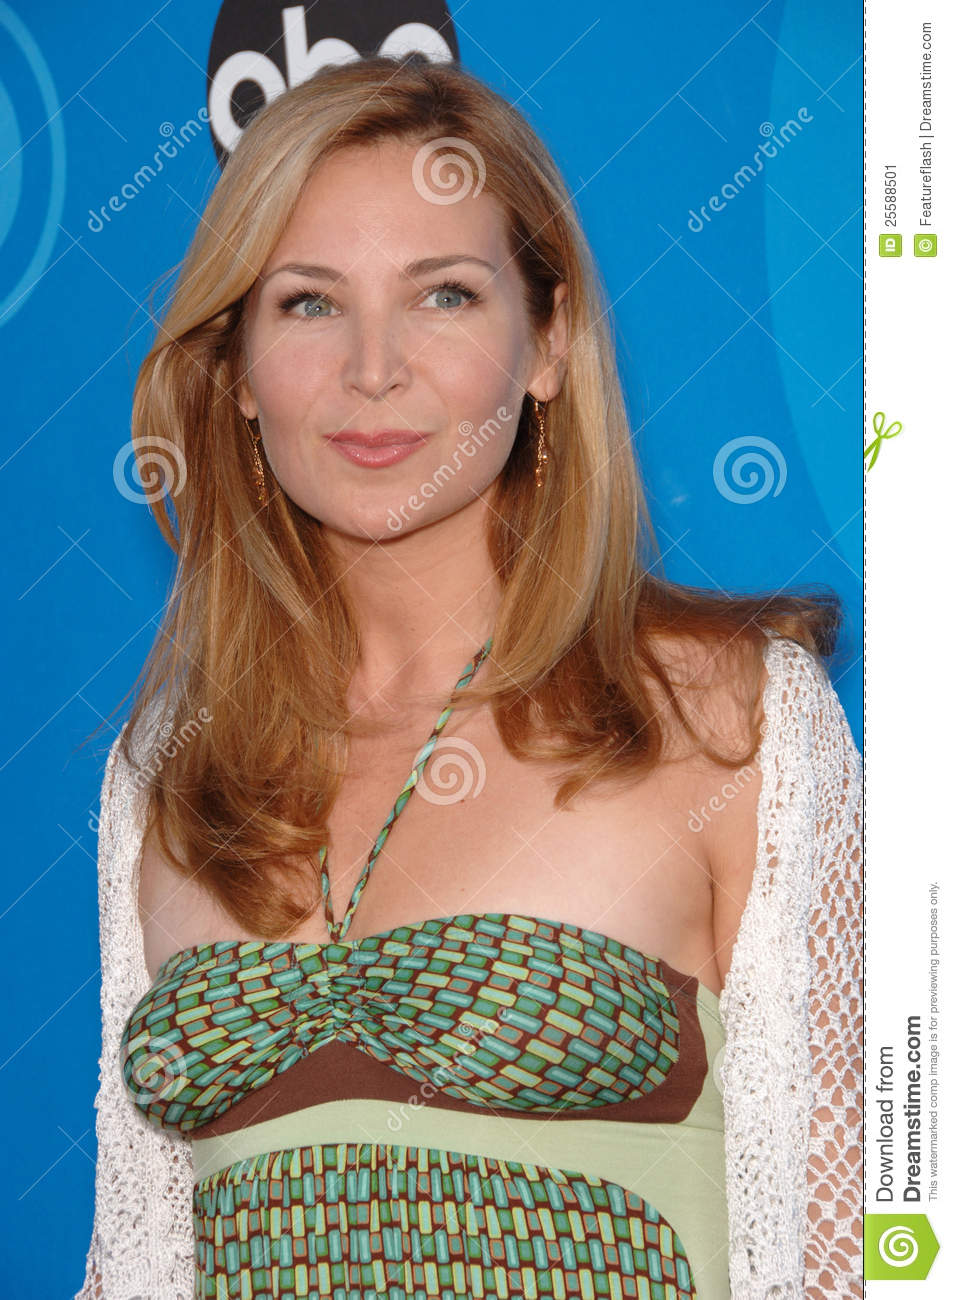 jennifer westfeldt 2015jennifer westfeldt jon hamm, jennifer westfeldt age, jennifer westfeldt imdb, jennifer westfeldt height, jennifer westfeldt bio, jennifer westfeldt 2015, jennifer westfeldt movies, jennifer westfeldt images, jennifer westfeldt 24, jennifer westfeldt husband, jennifer westfeldt instagram, jennifer westfeldt interview, jennifer westfeldt grey's anatomy, jennifer westfeldt youtube